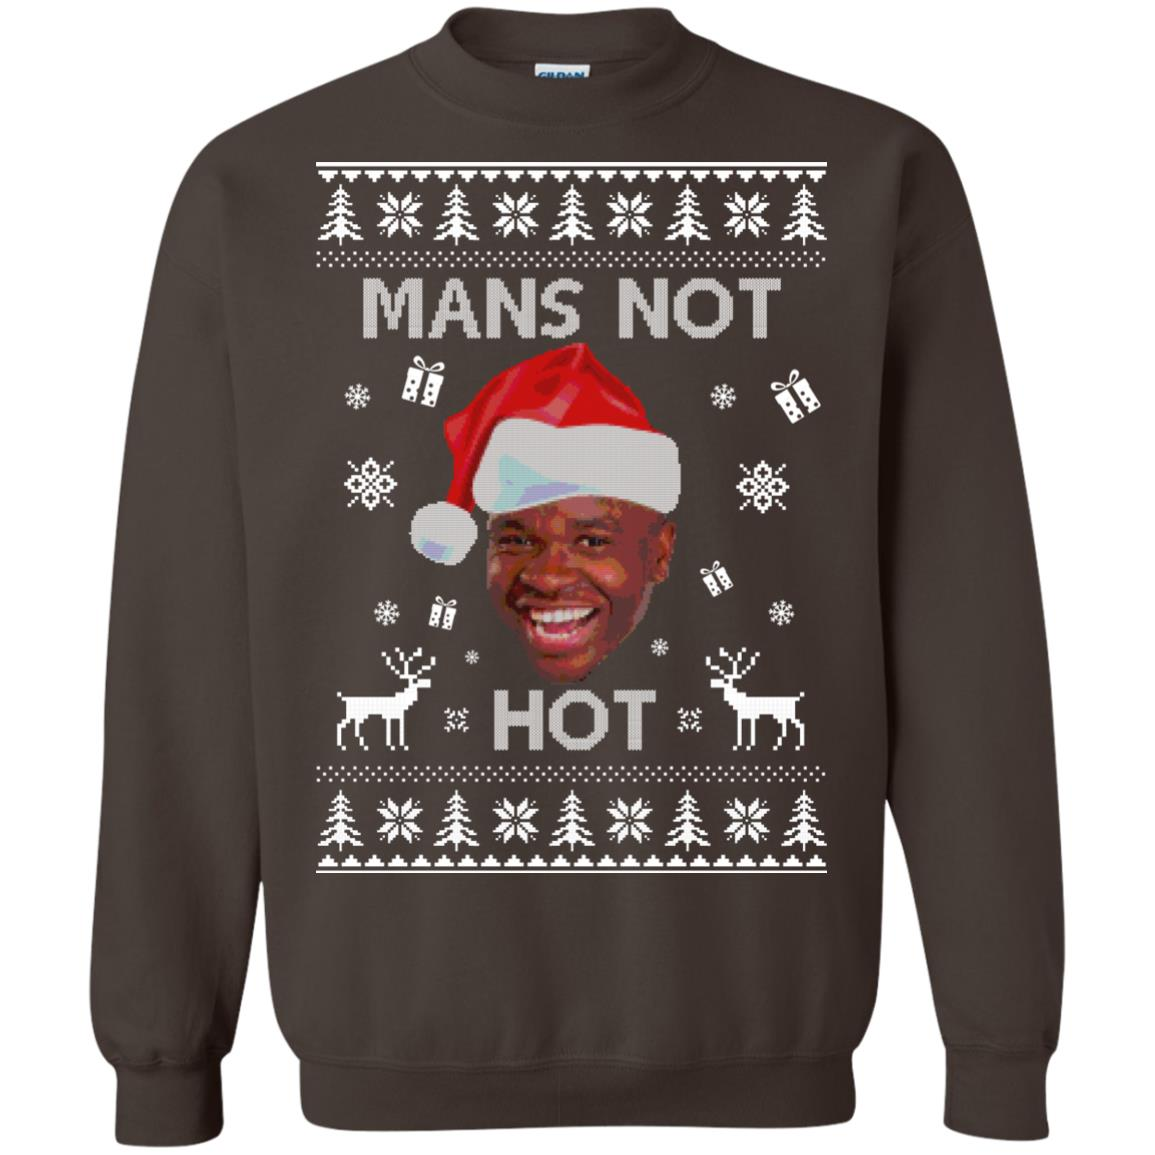 Roadman The Thing Go Skraaa Mans Not Hot Christmas Sweater